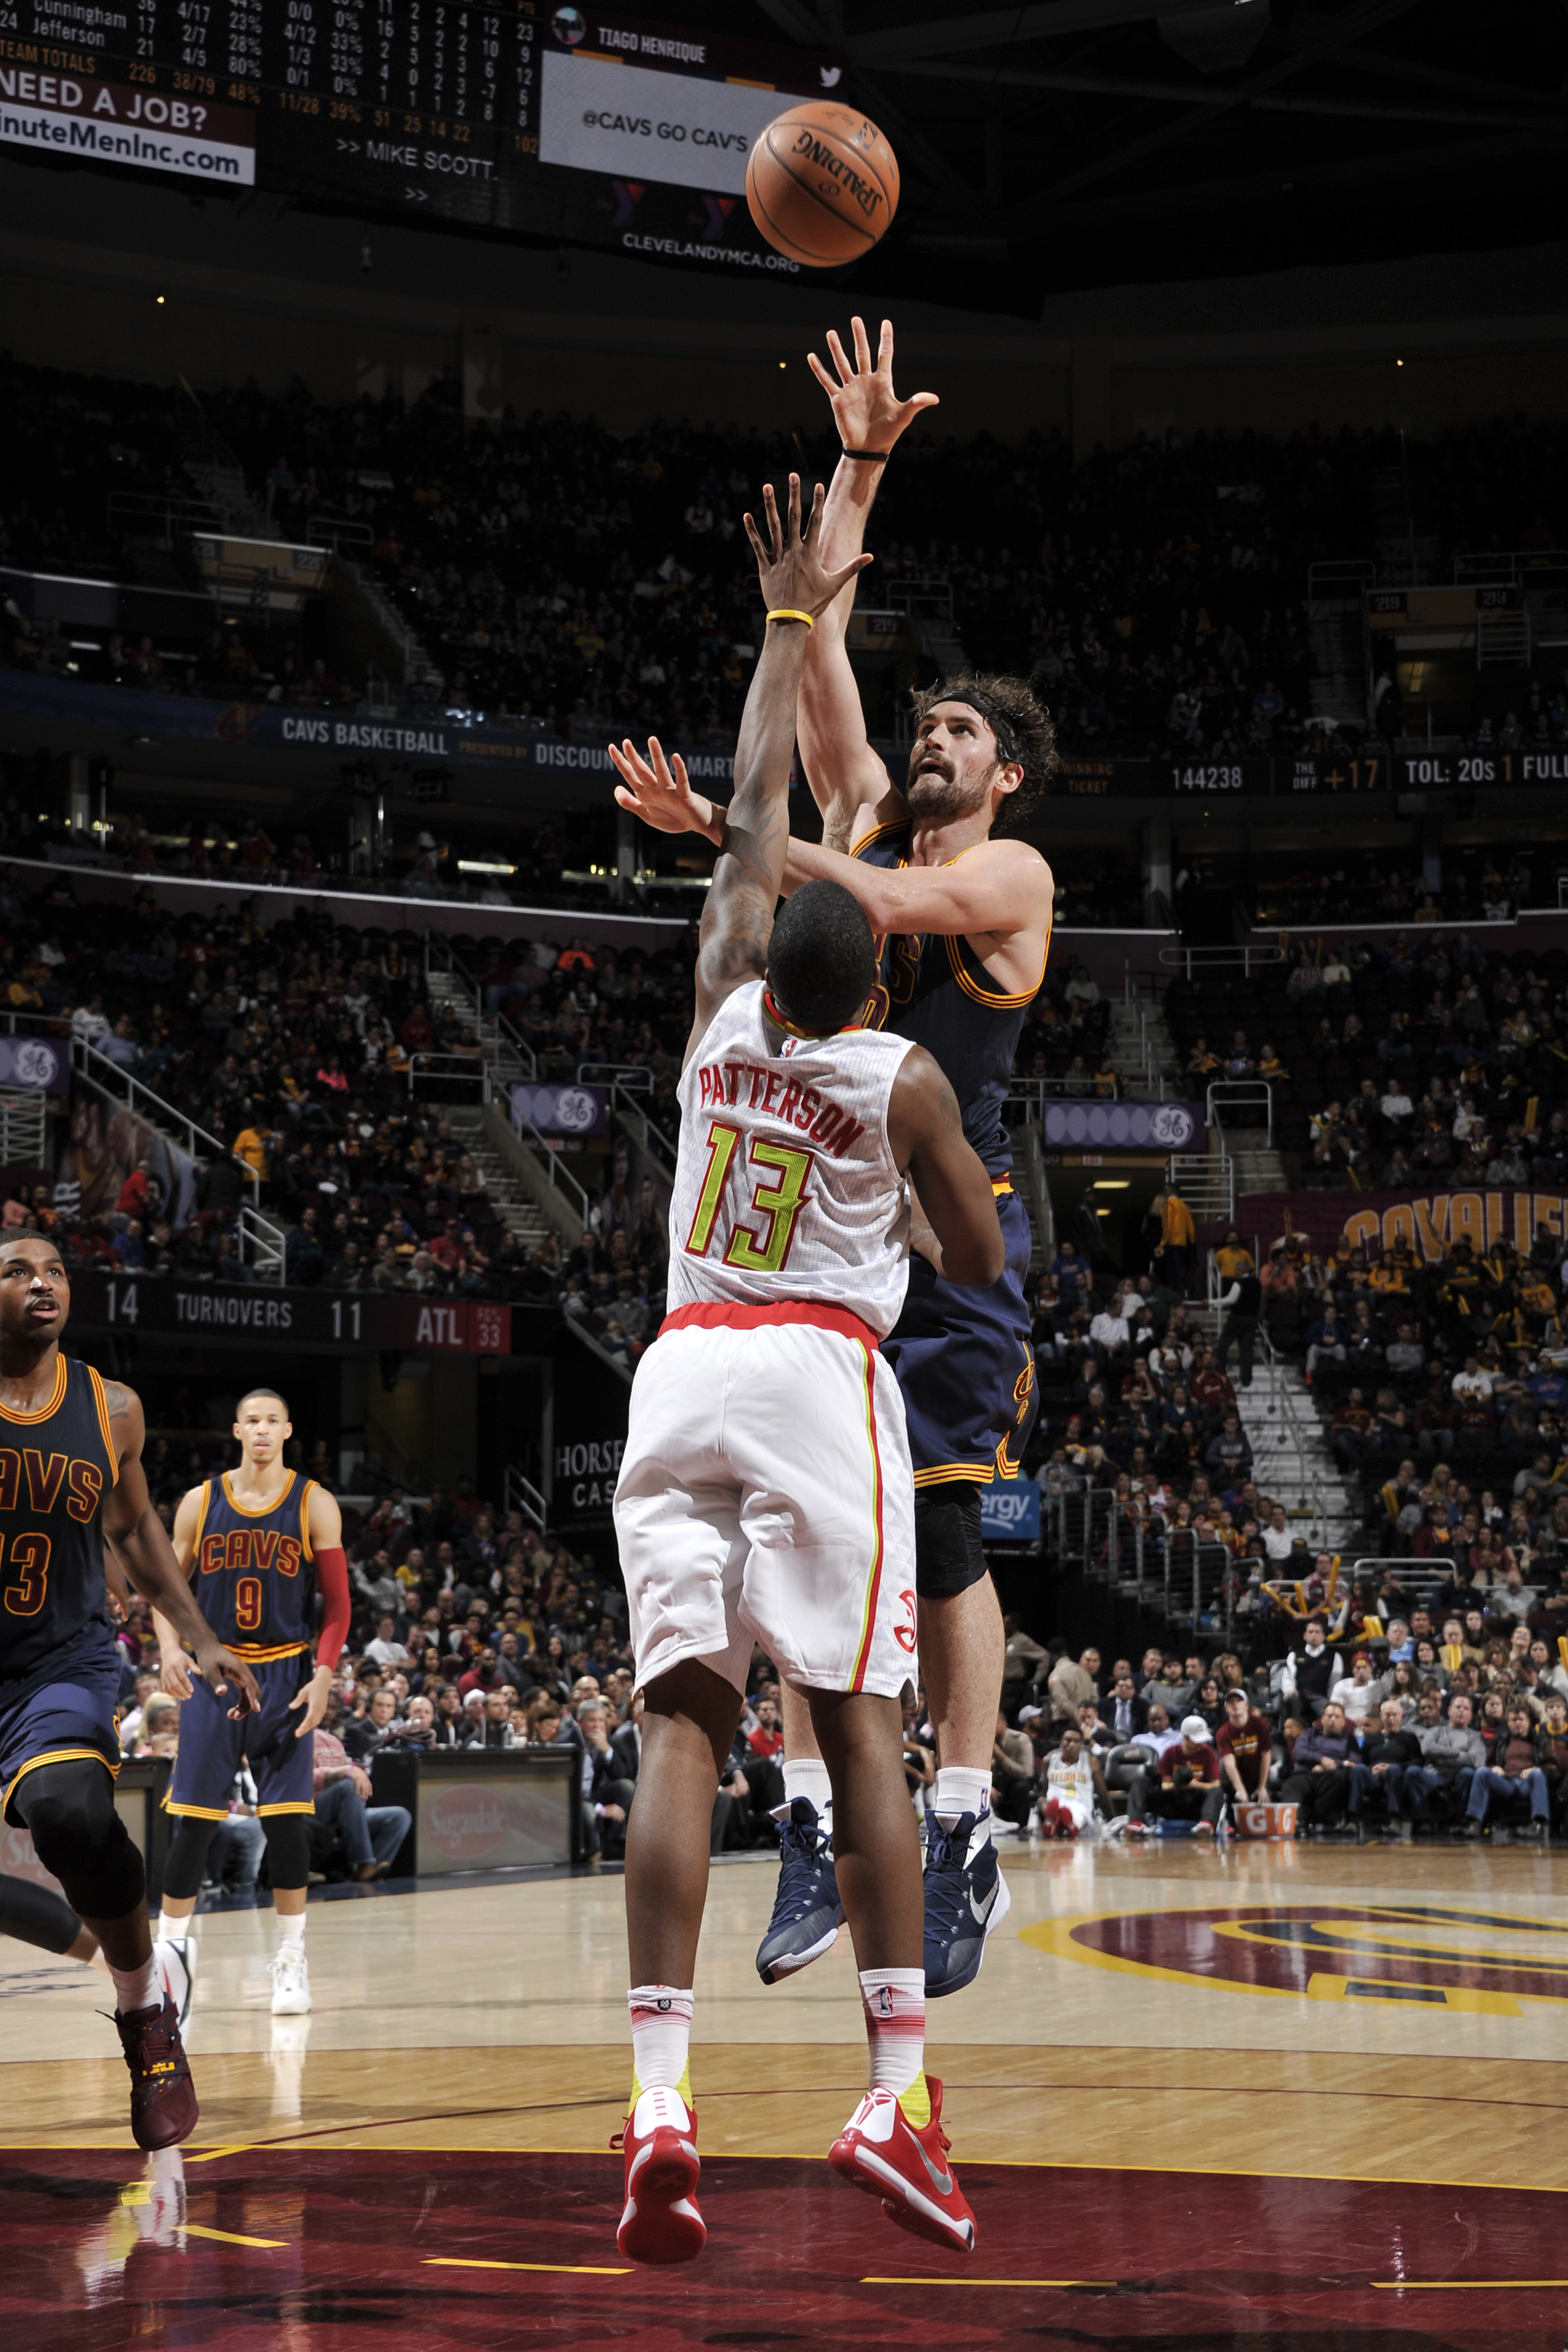 CLEVELAND, OH - NOVEMBER 21:  Kevin Love #0 of the Cleveland Cavaliers shoots against Lamar Patterson #13 of the Atlanta Hawks on November 21, 2015 at Quicken Loans Arena in Cleveland, Ohio. (Photo by David Liam Kyle/NBAE via Getty Images)